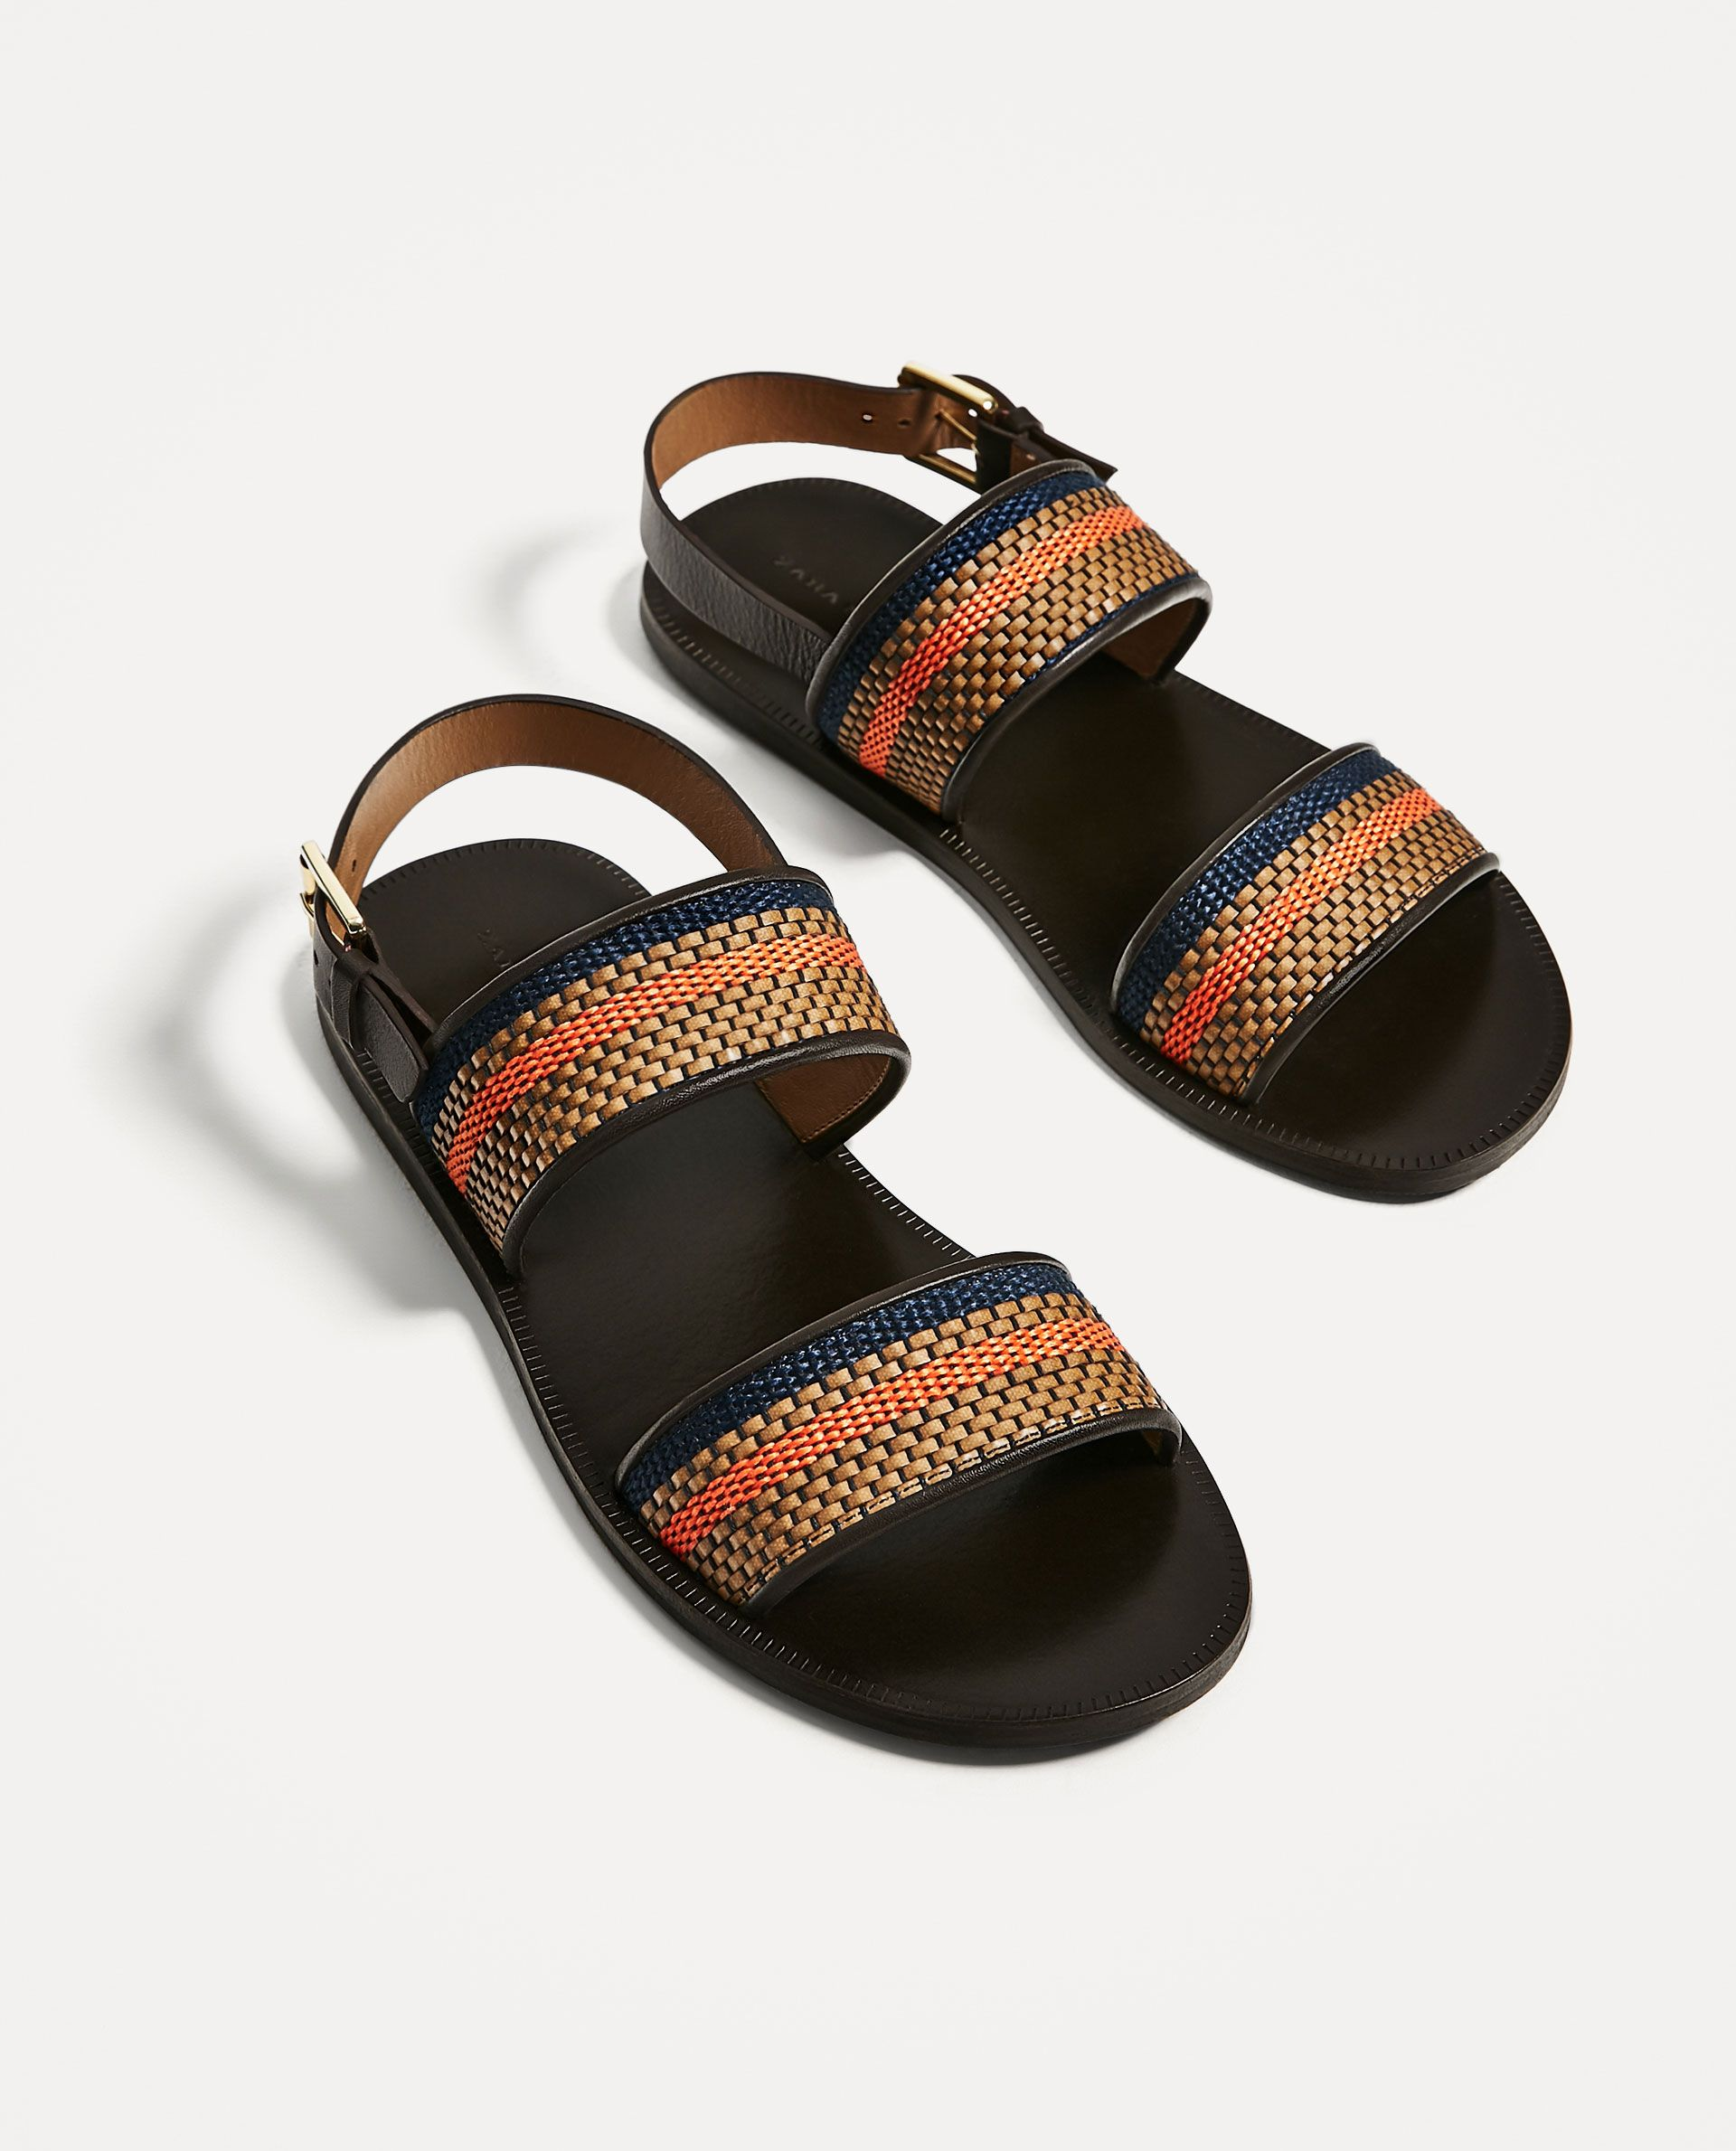 751220bd499fa3 ZARA - MAN - LEATHER SANDALS WITH BROWN AND ORANGE STRAPS